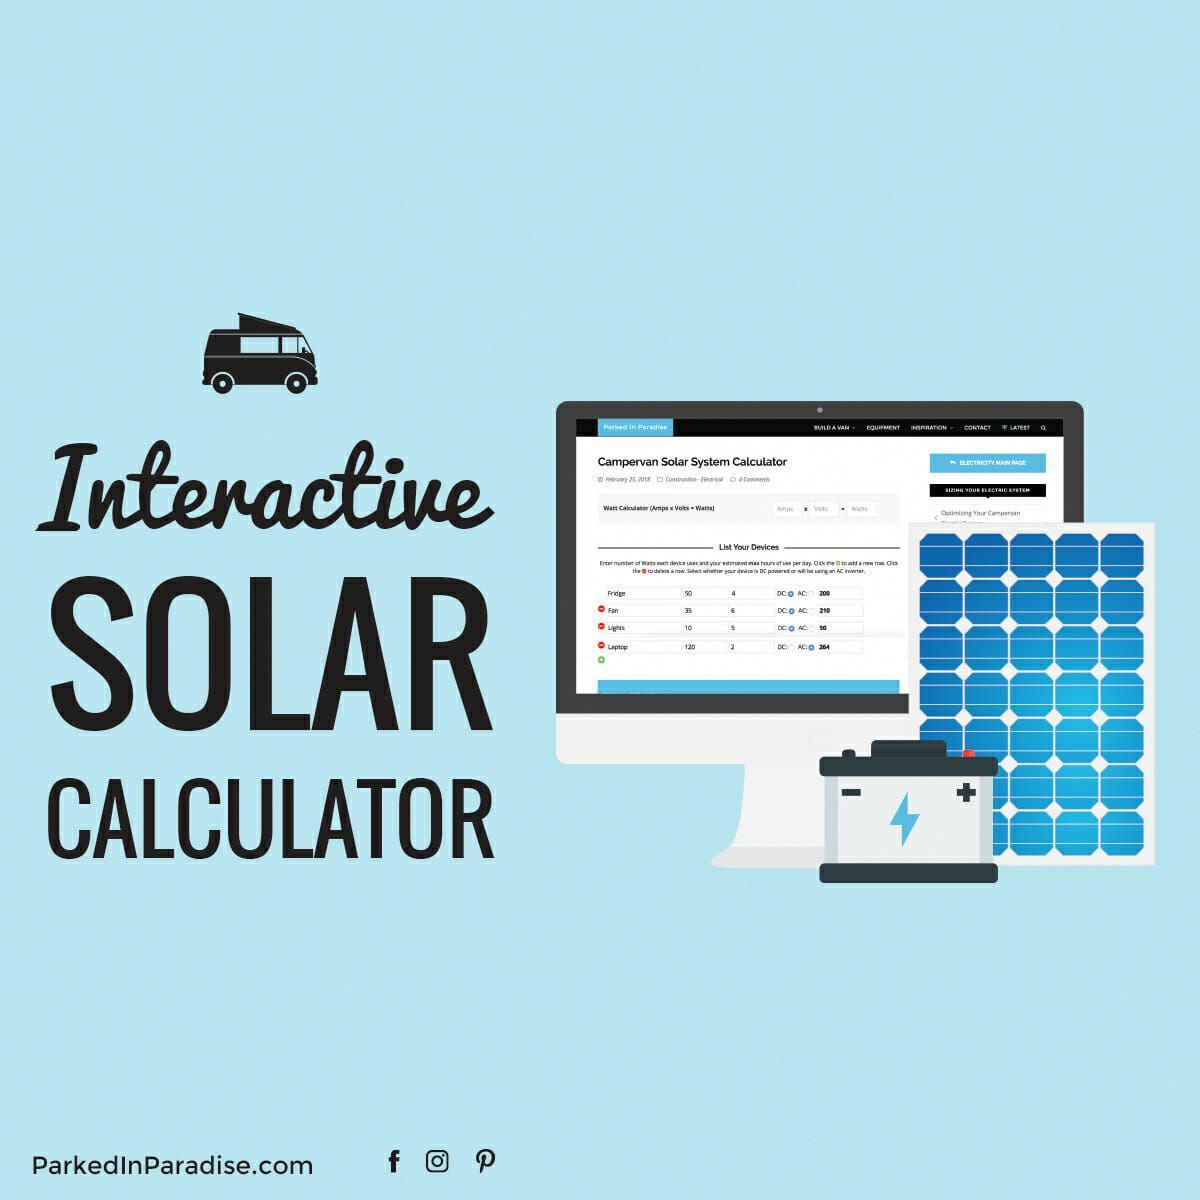 Use This Campervan Solar Calculator To Help You Decide How